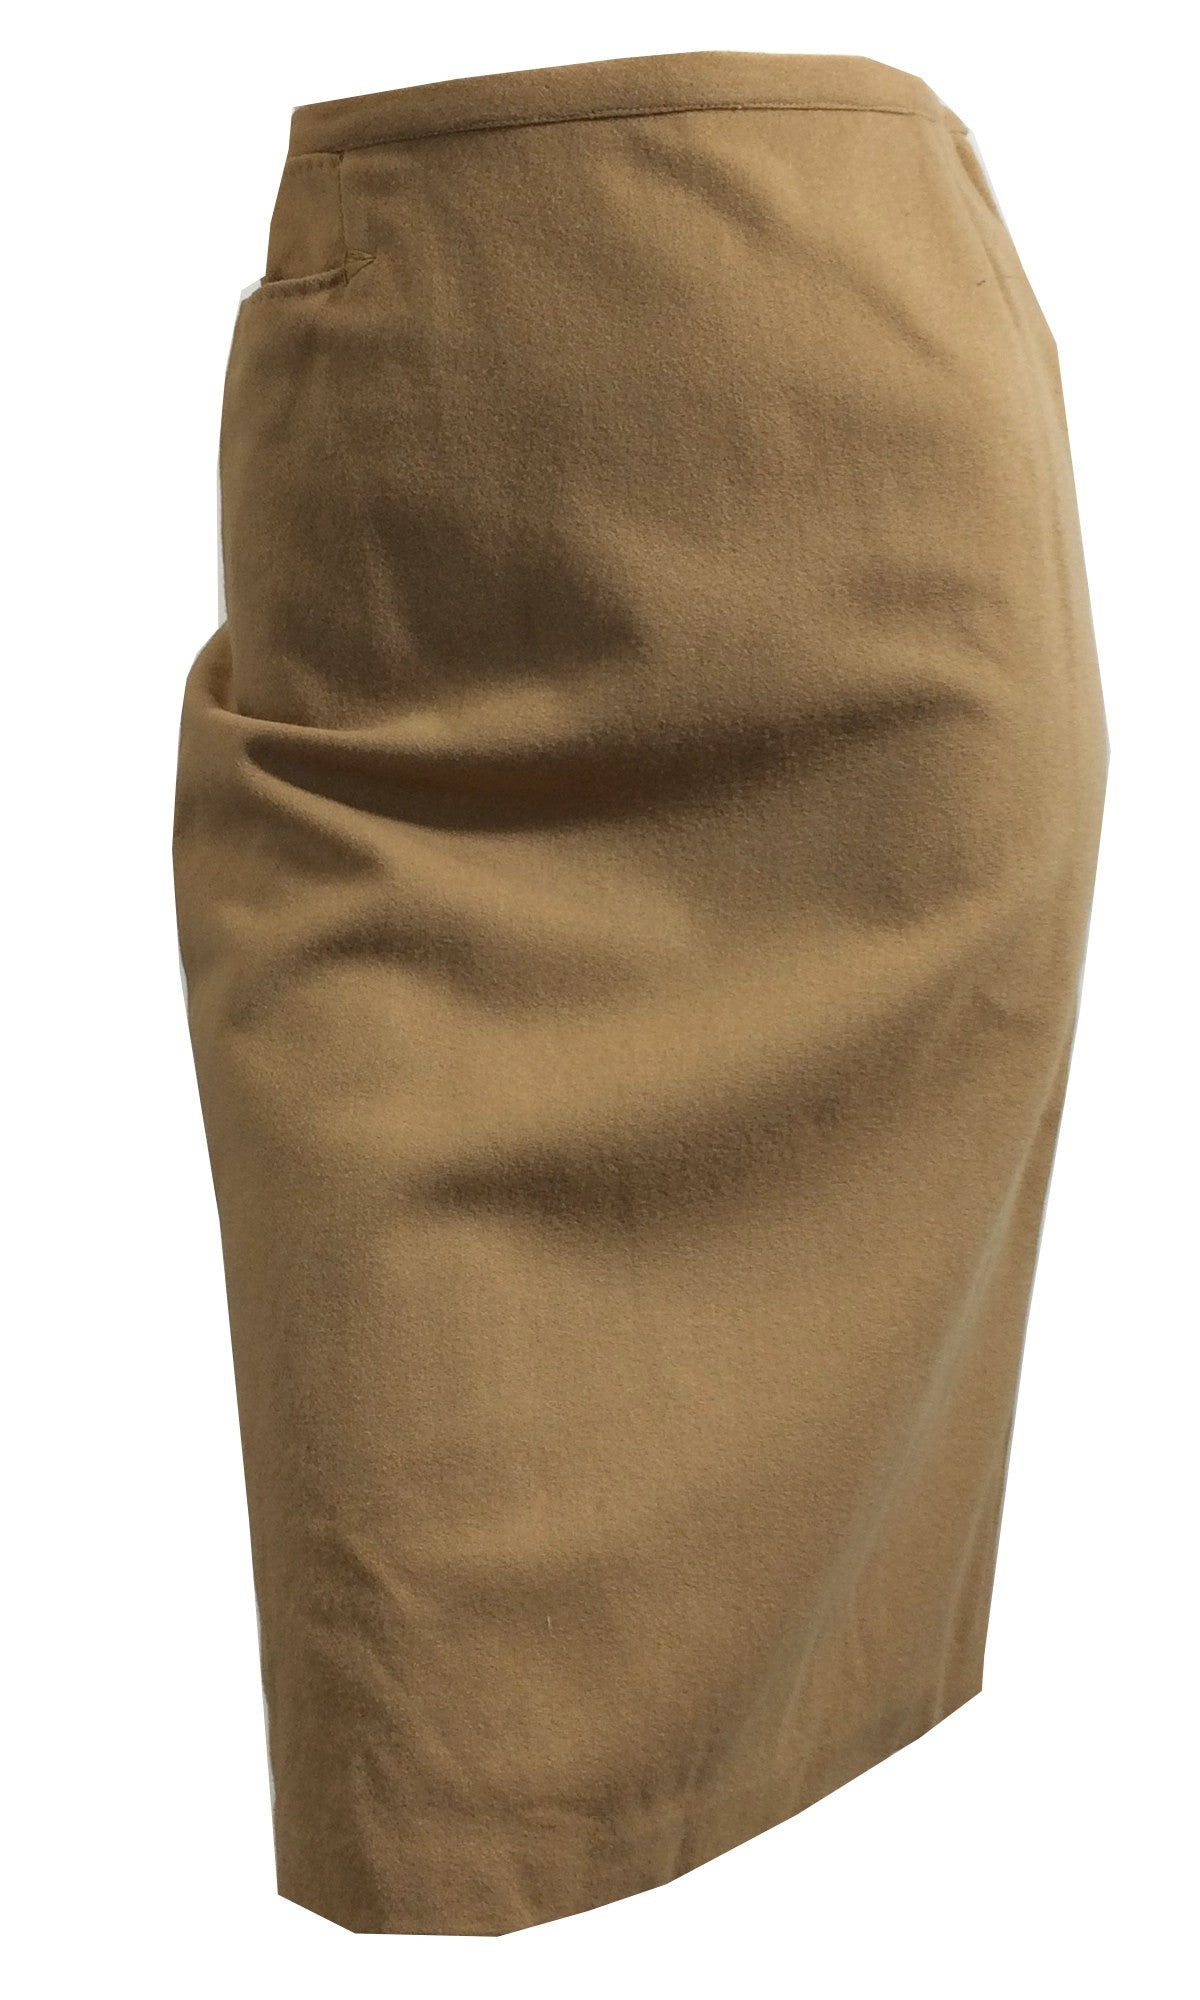 Soft Tan Chic Sleek Pencil Skirt circa 1960s Dorothea's Closet Vintage Clothing